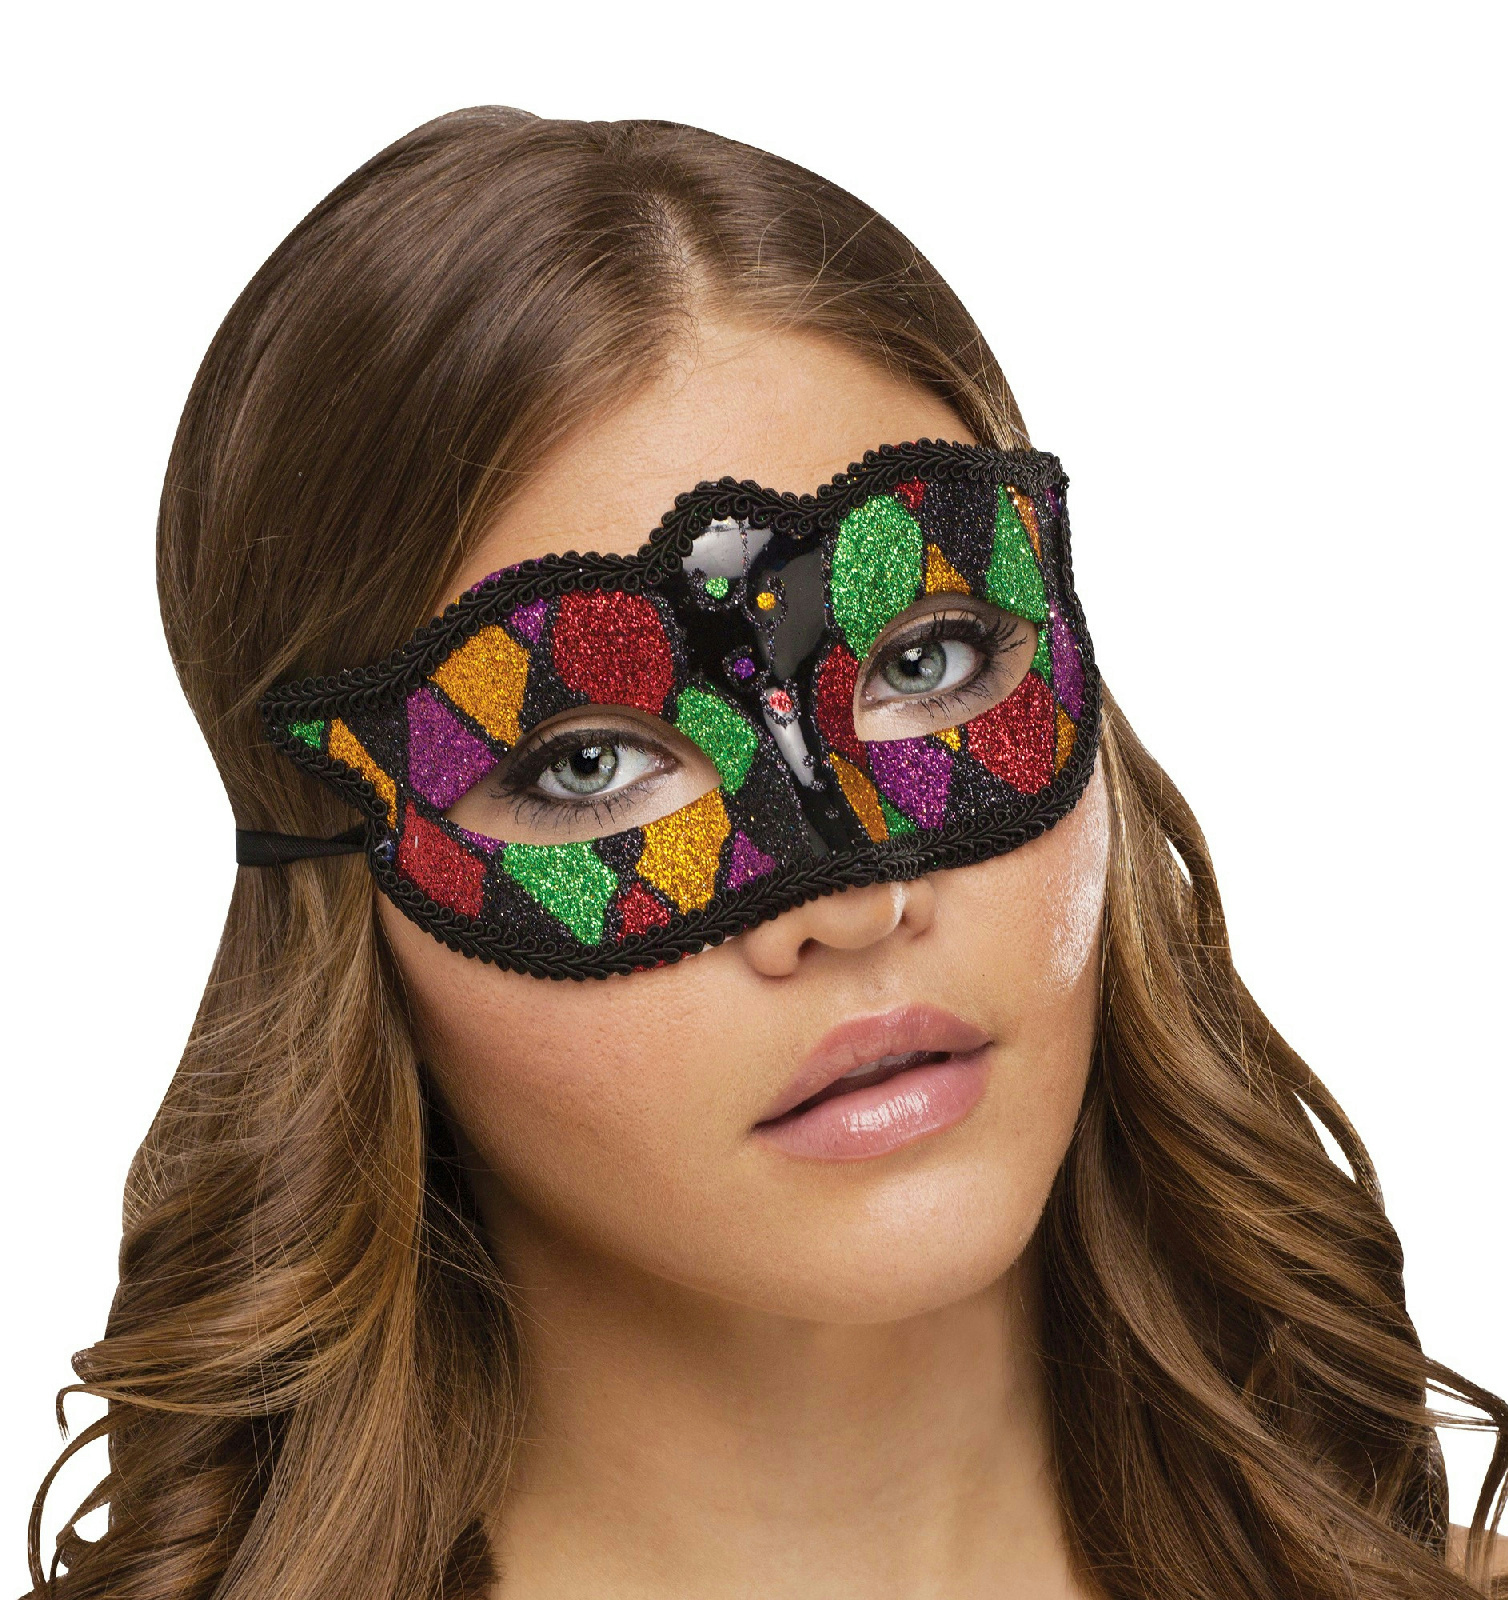 Cheap Mardi Gras Masks in BulkLowest Prices Online· 10% Off Code: SAVE10NOW· Shipping Within 24 Hours/10 (1, reviews).